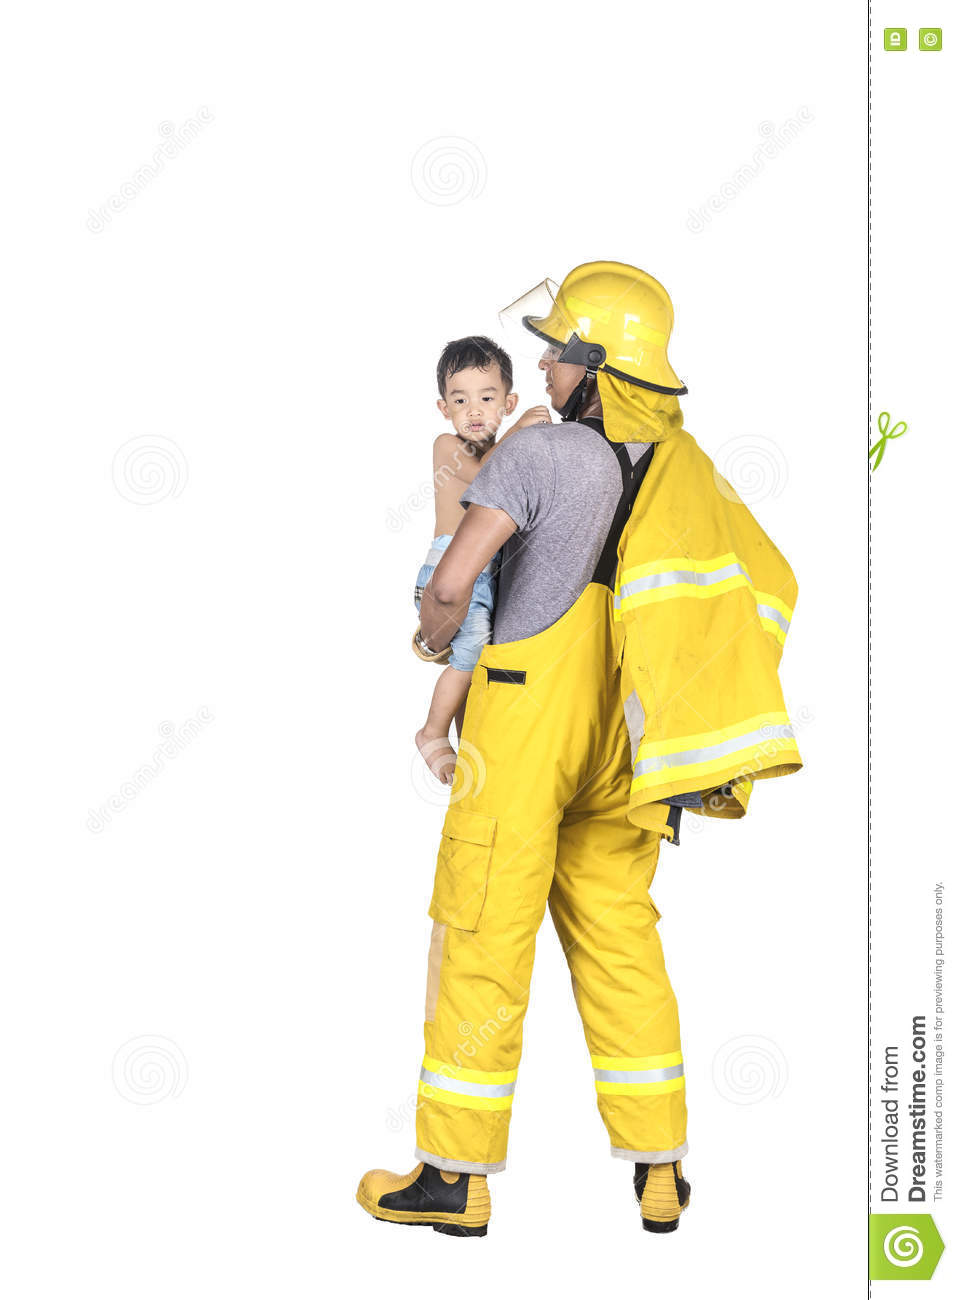 Fireman rescued child from the fire.